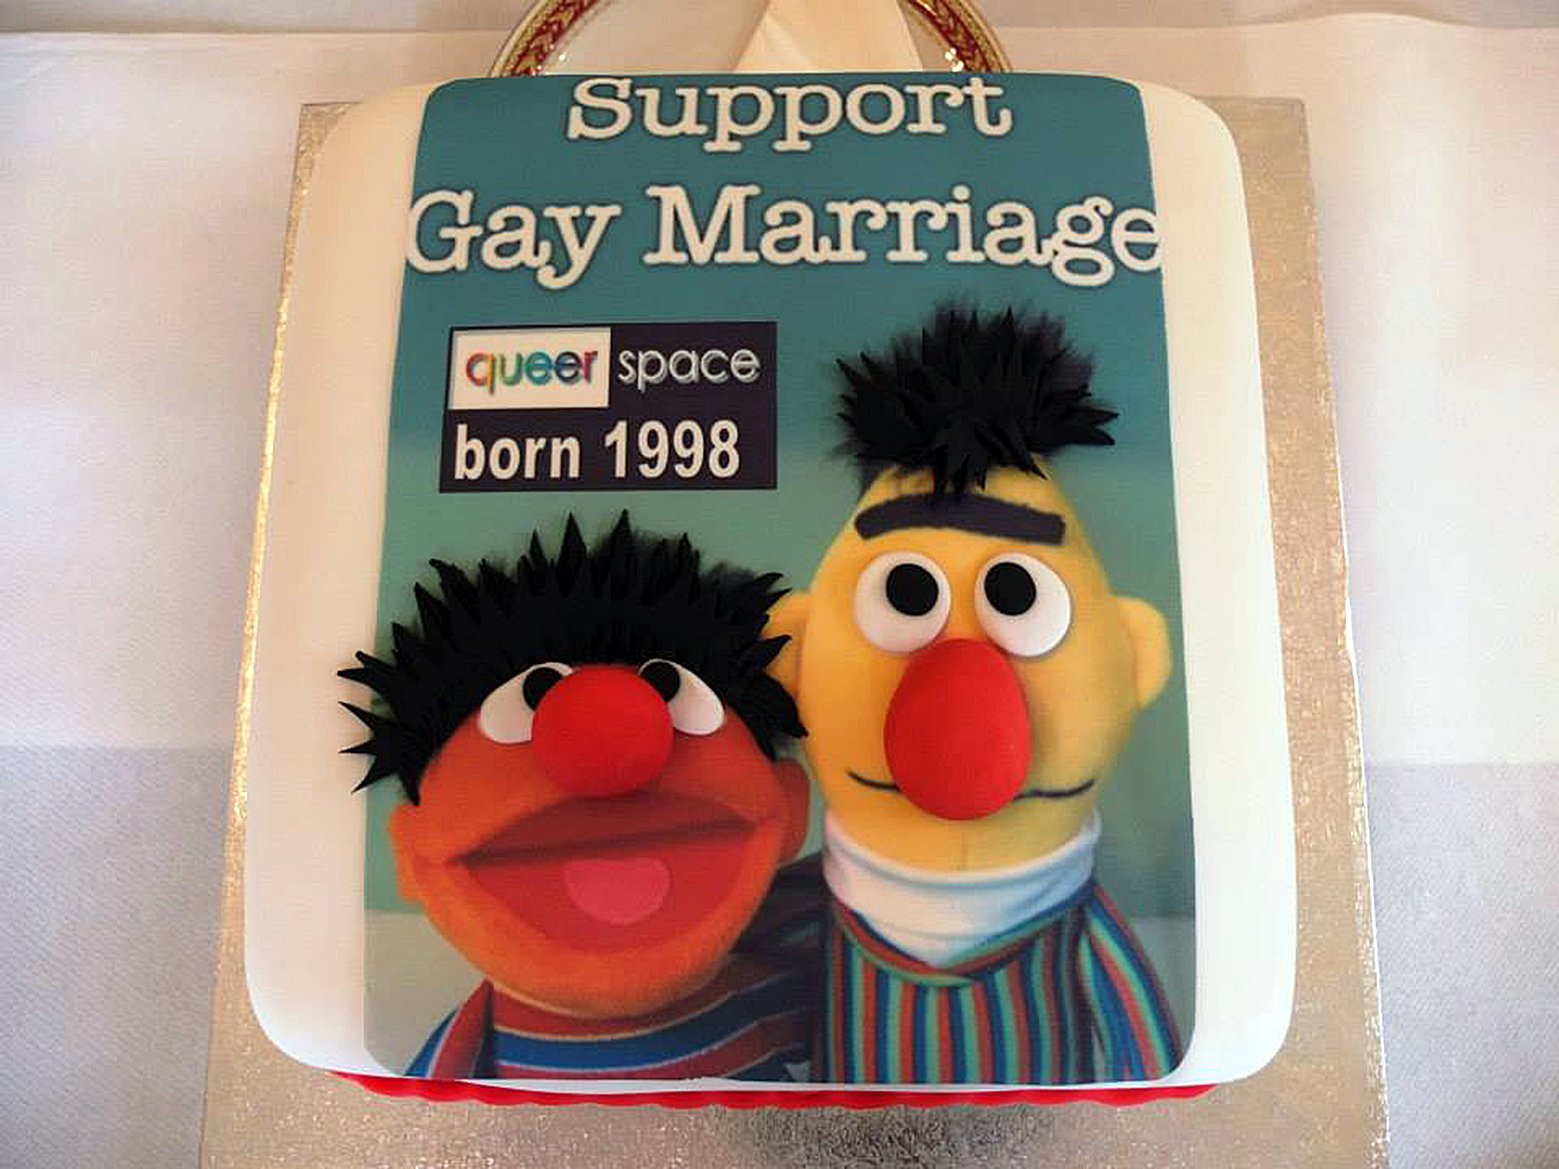 """The """"gay cake"""" this one made by another bakery with the design support Gay Marriage with the faces of Sesame Streets Bert and Ernie. A judge has ruled that a Christian-run bakery discriminated against a gay customer by refusing to make a cake with a pro-gay marriage slogan. Ashers Baking Company, based in County Antrim, was taken to court by gay rights activist Gareth Lee. A Belfast judge said, as a business, Ashers was not exempt from discrimination law. pic posted on social network Picture by Pixel8000 07917221968"""